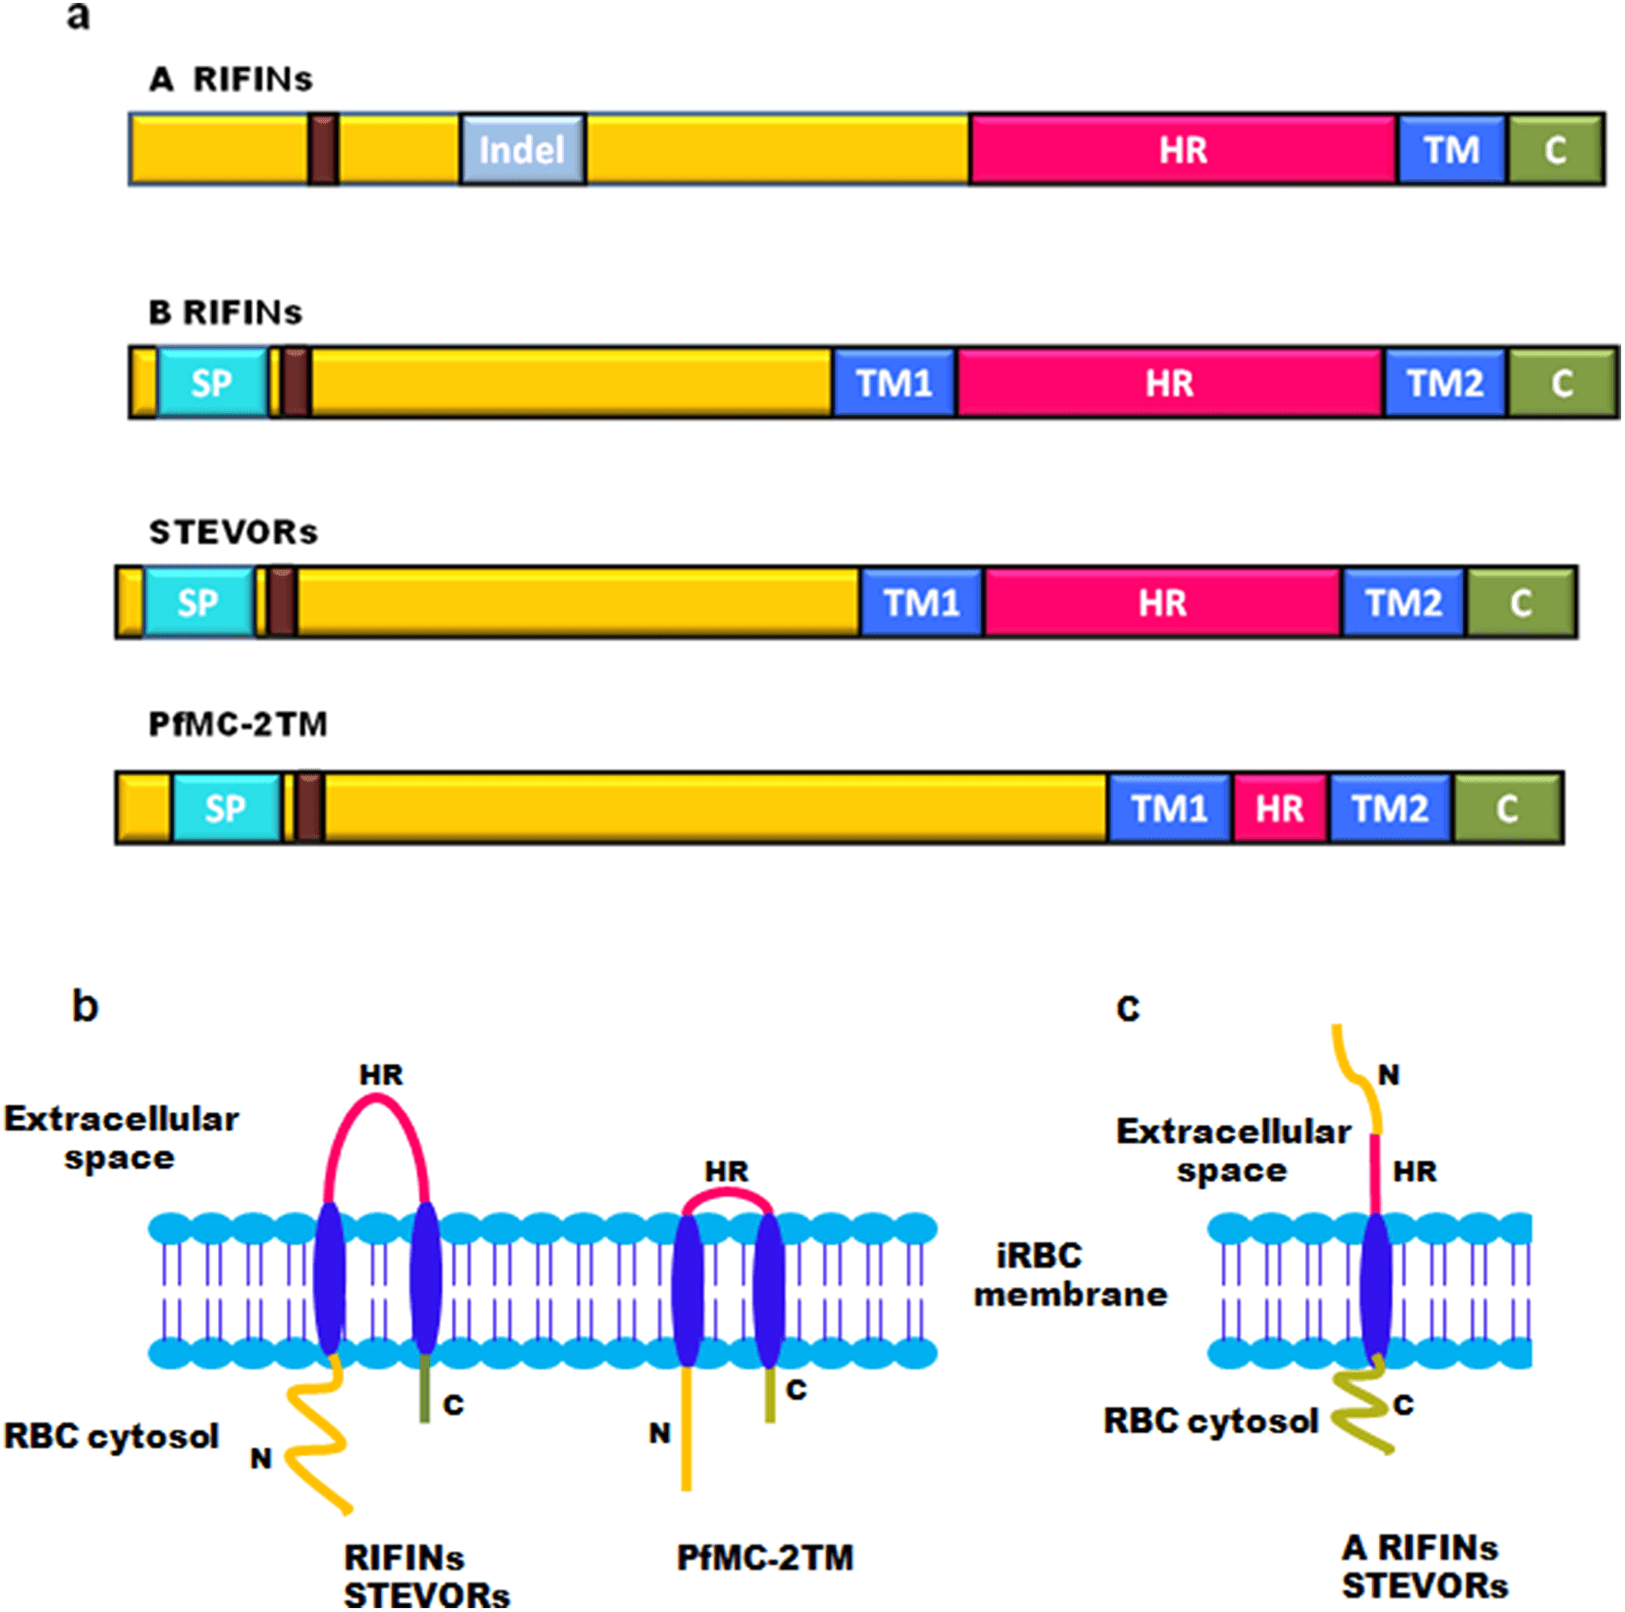 Amw 505 Ix 2tm Proteins An Antigenically Diverse Superfamily With Variable